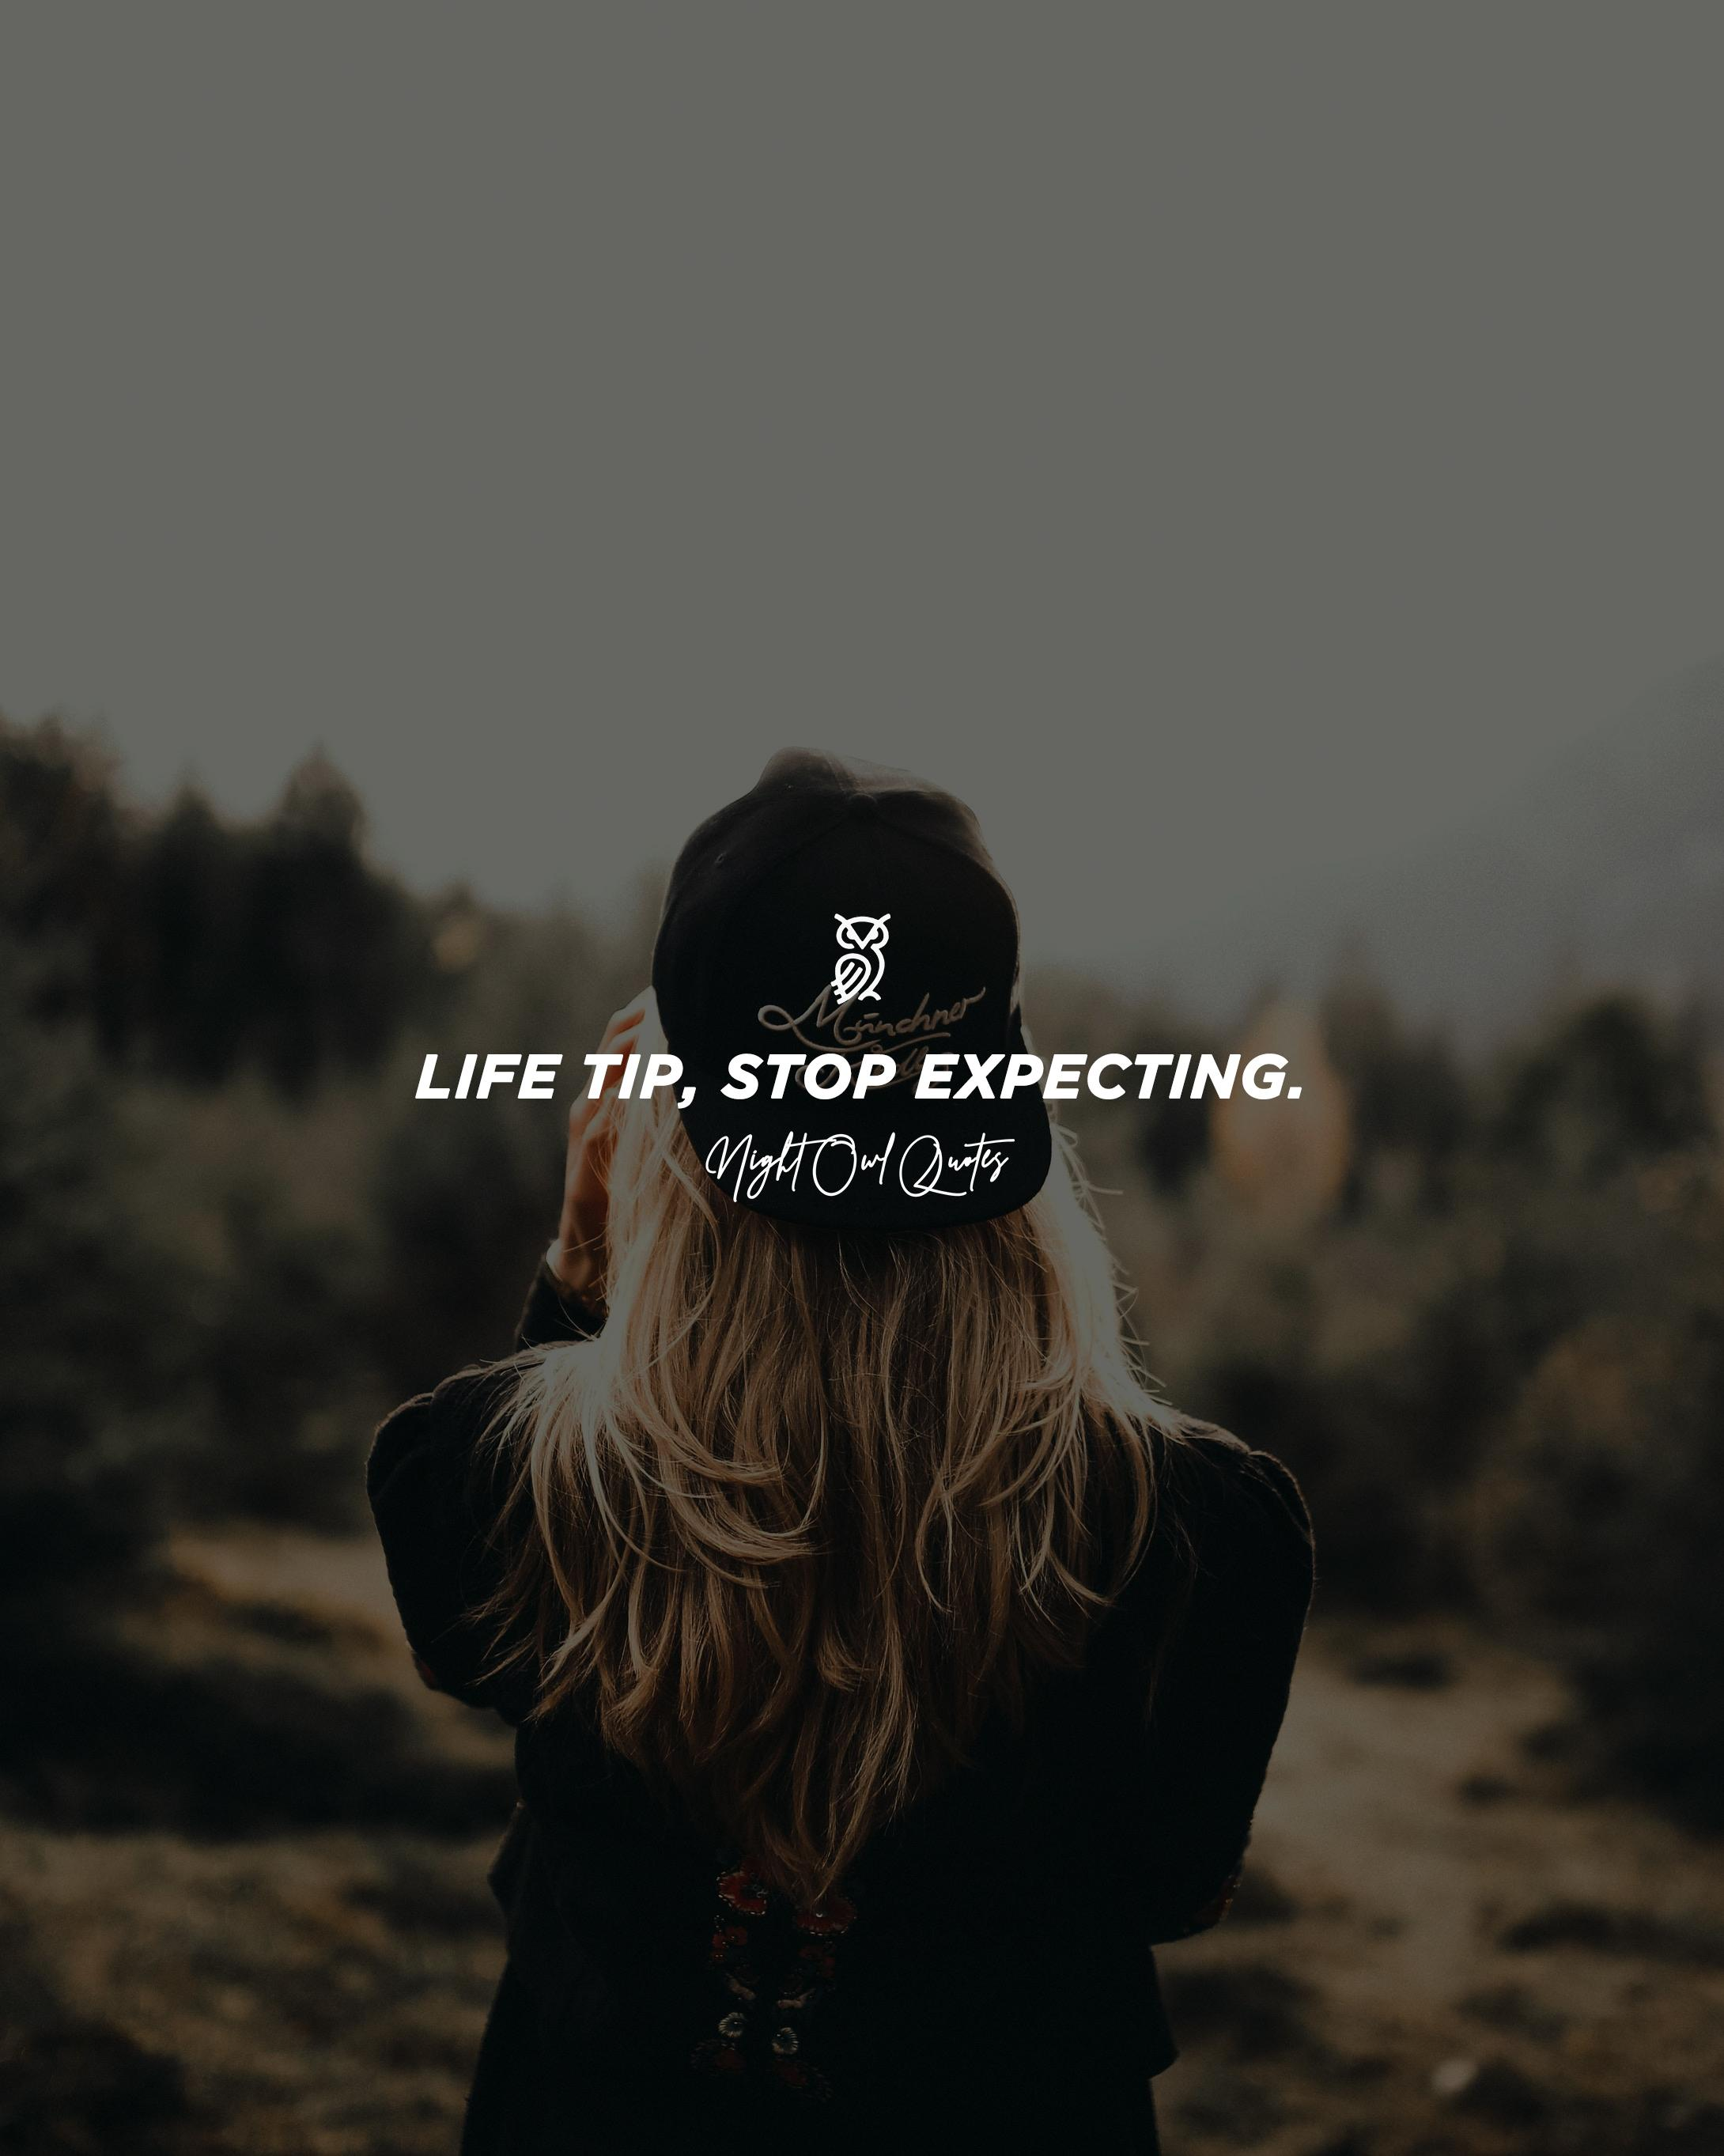 [Image] Valuable Life Tip